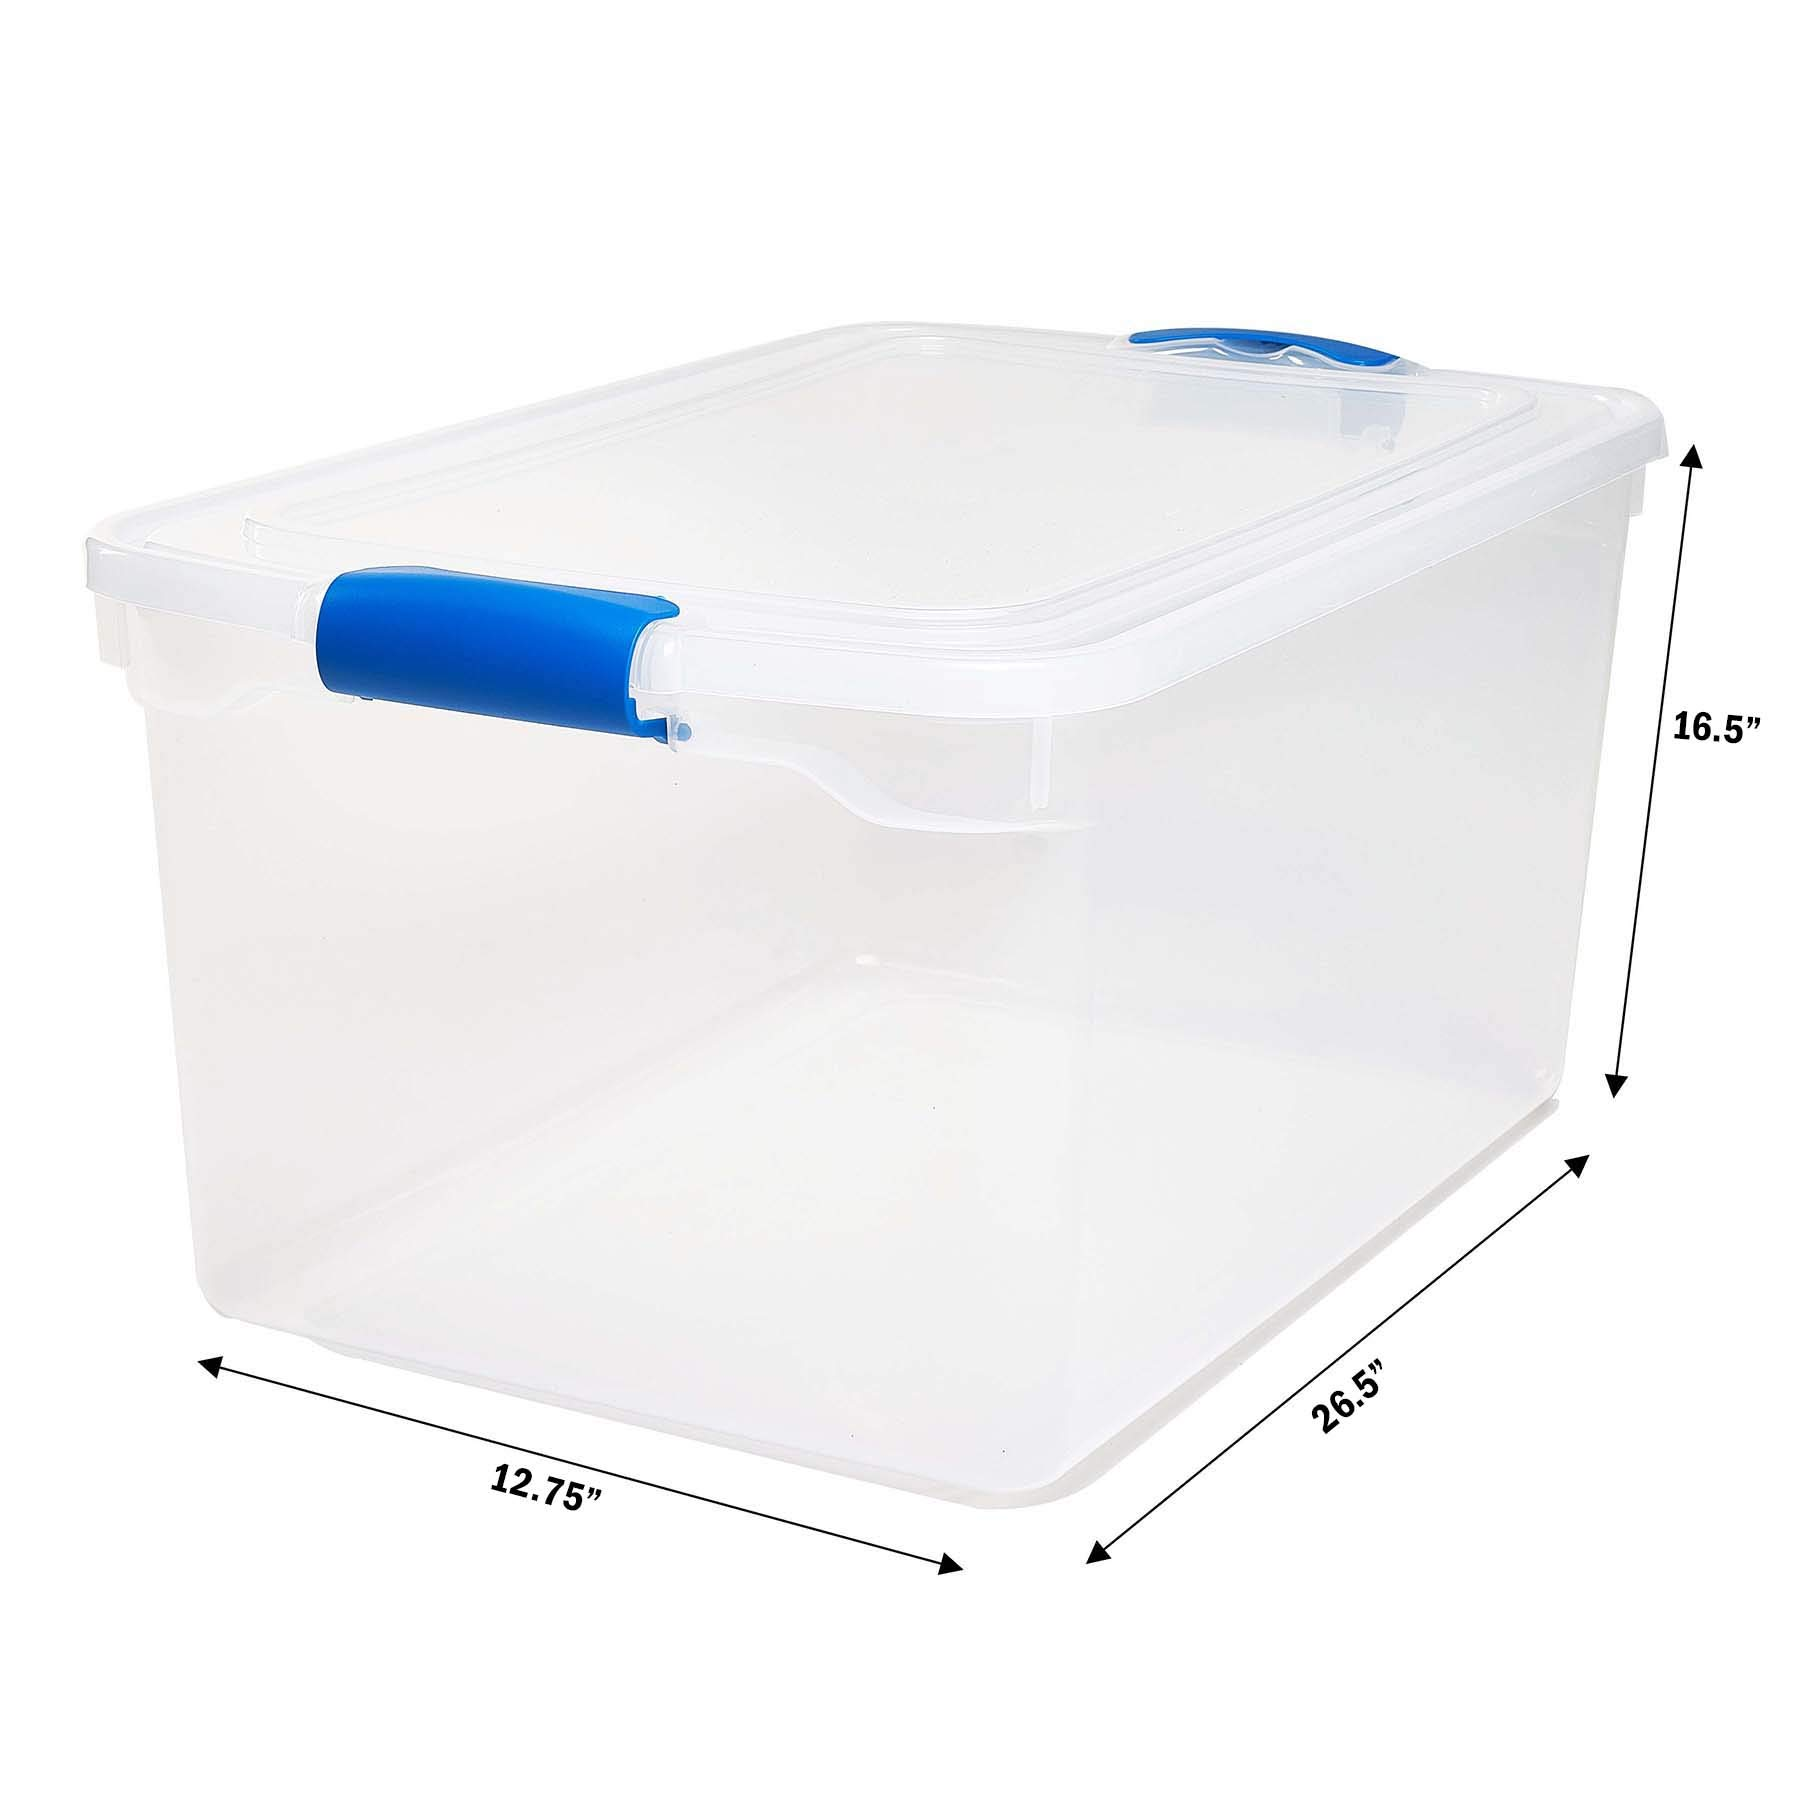 Homz Plastic Storage, Modular Stackable Storage Bins with Blue Latching Handles, 66 Quart, Clear, 2-Pack by Homz (Image #6)